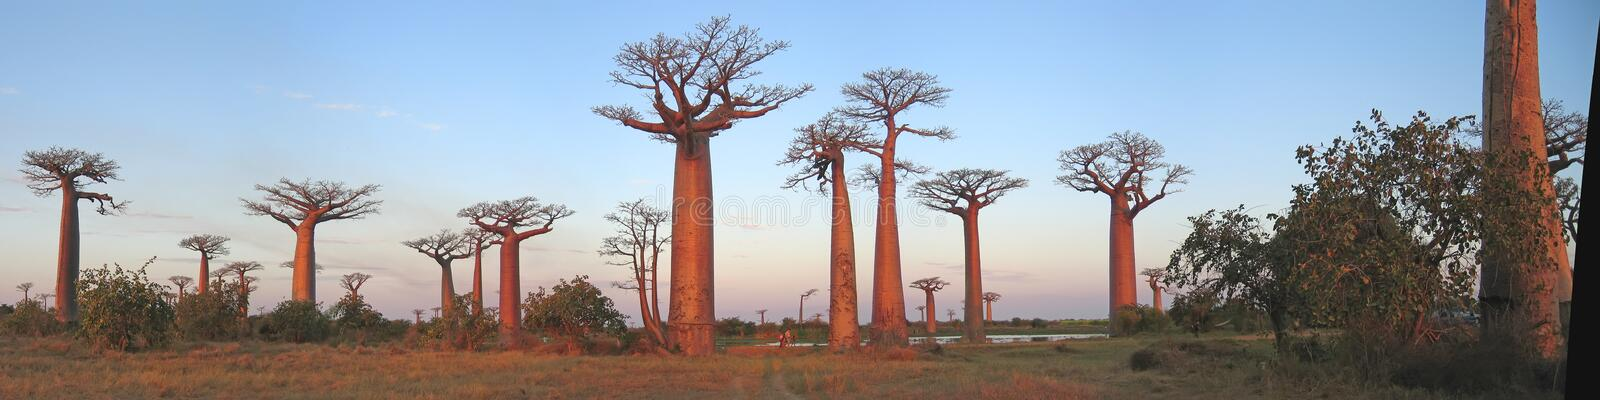 Baobabs forest, Baobab alley royalty free stock image